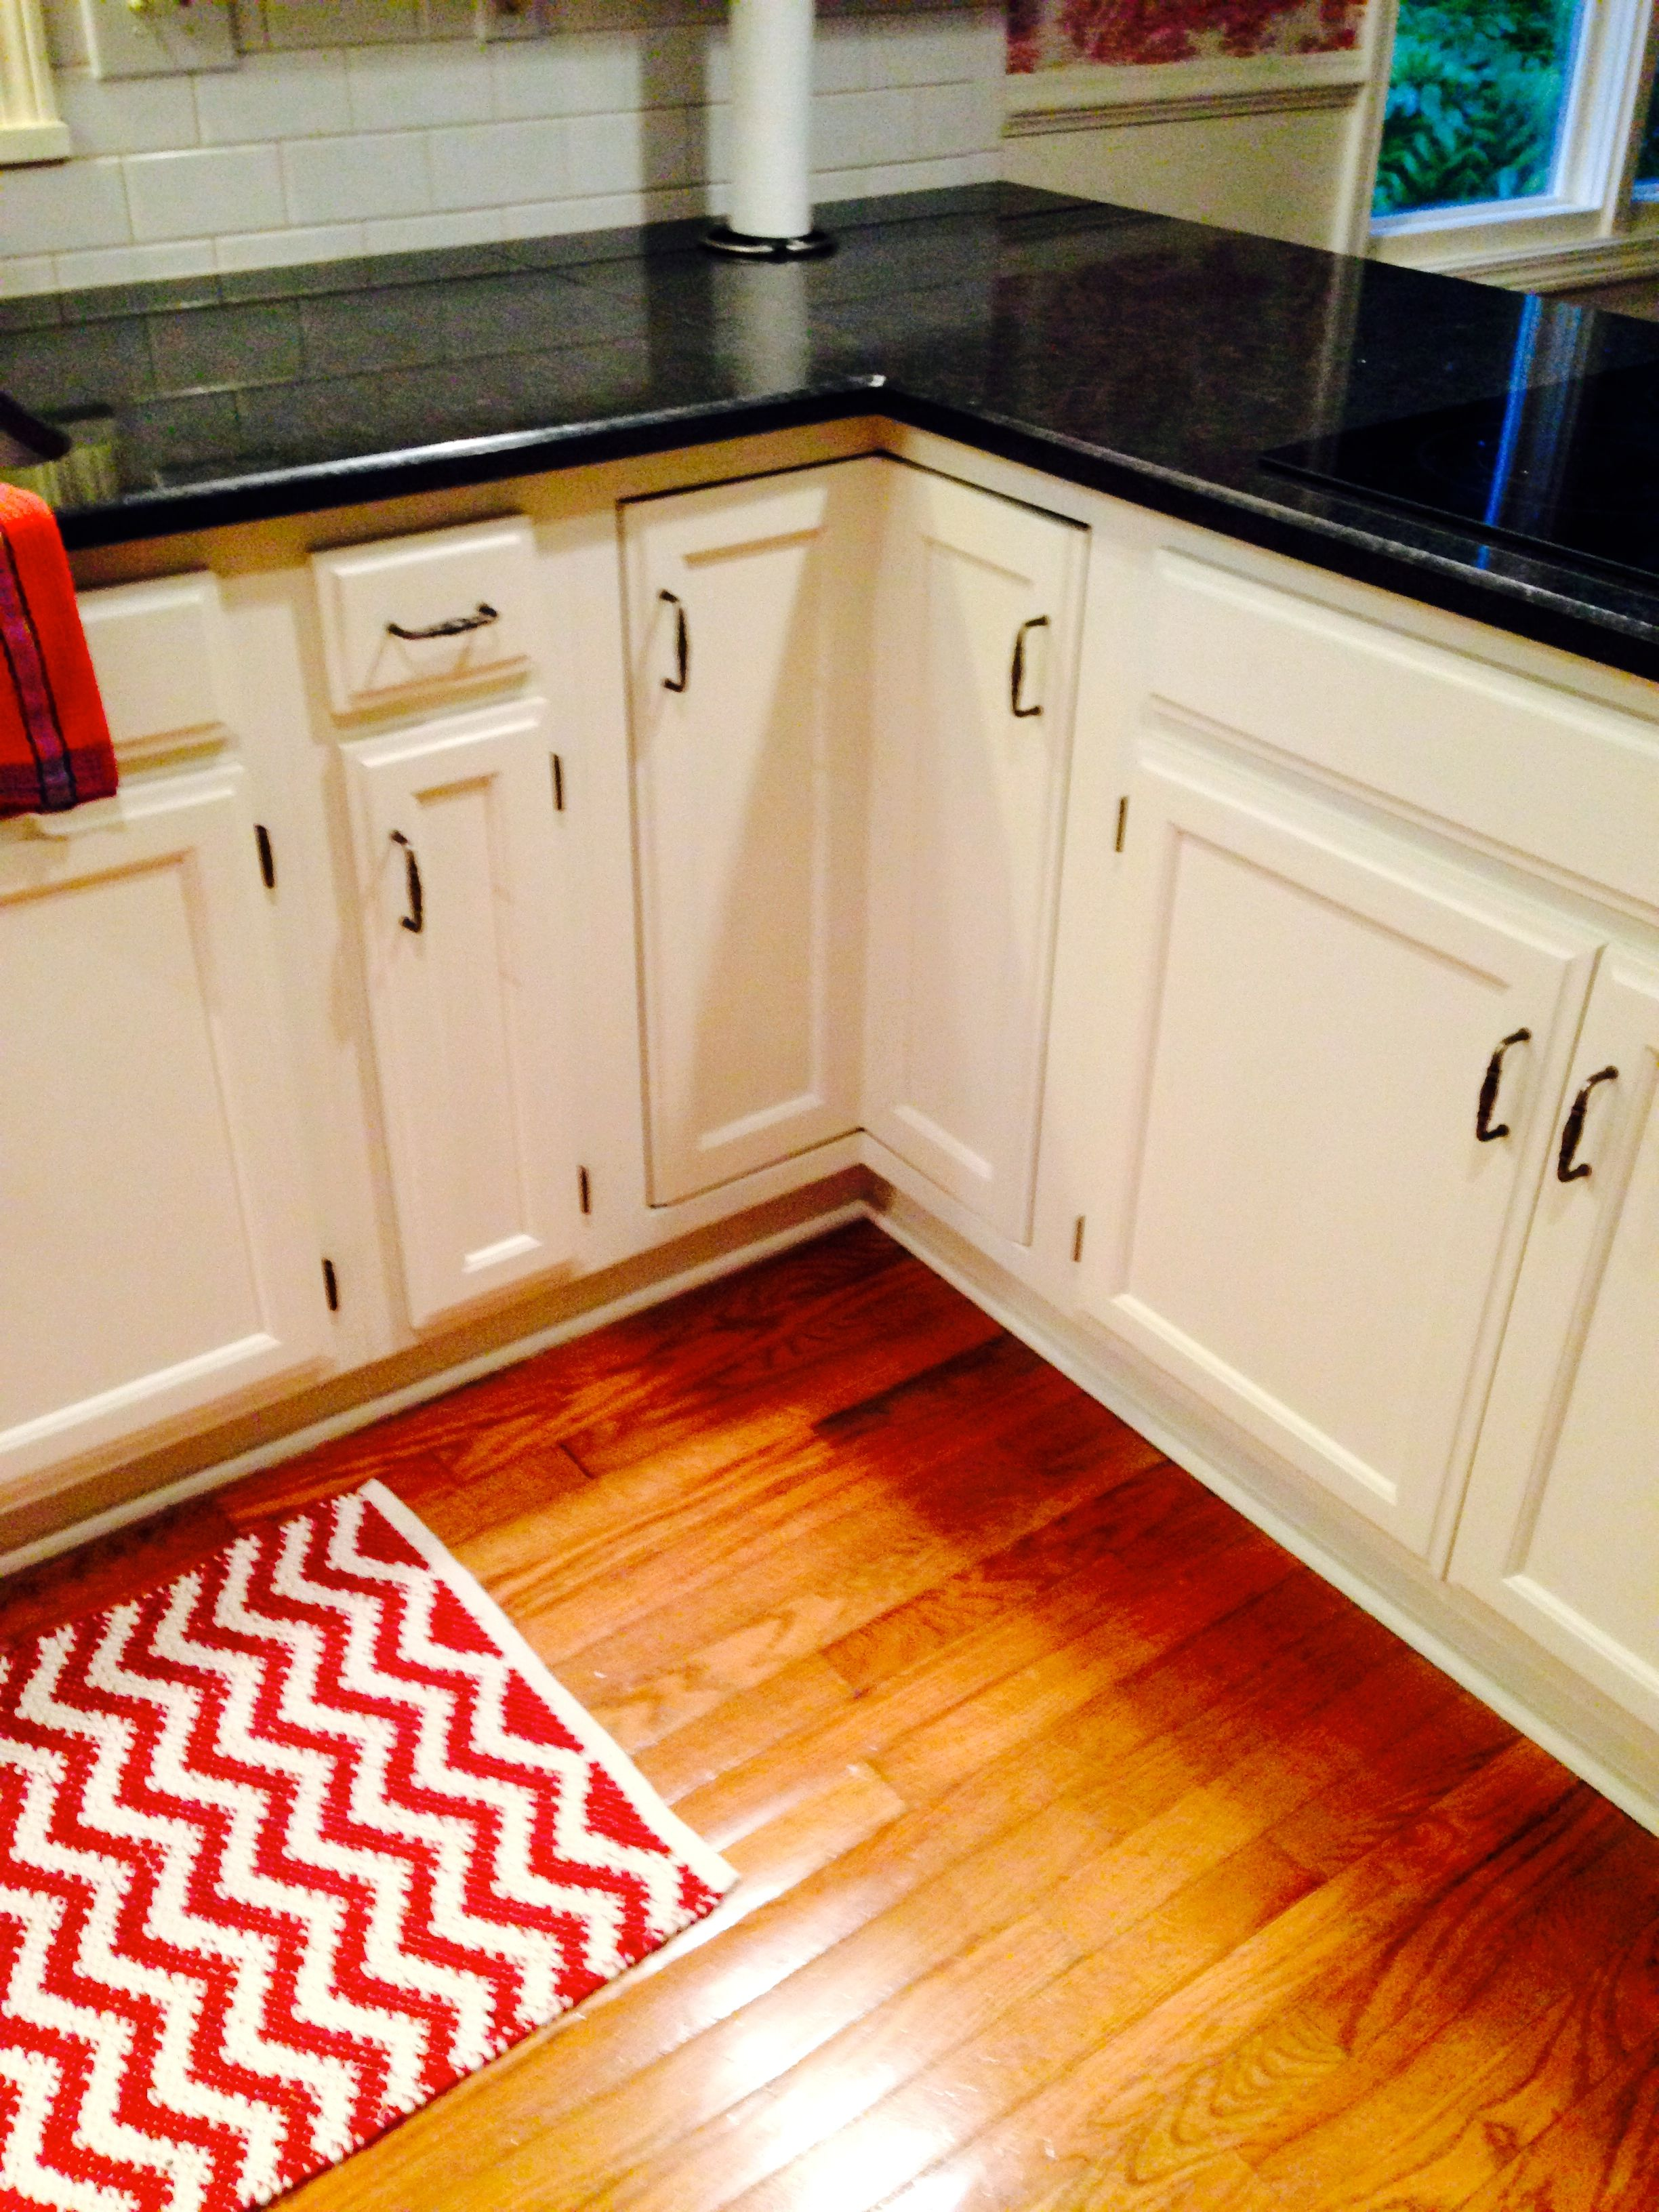 off white painted kitchen cabinets by sarah hines and mets schilstra rh ro pinterest com Cream Painted Kitchen Cabinets pictures of kitchen cabinets painted off white